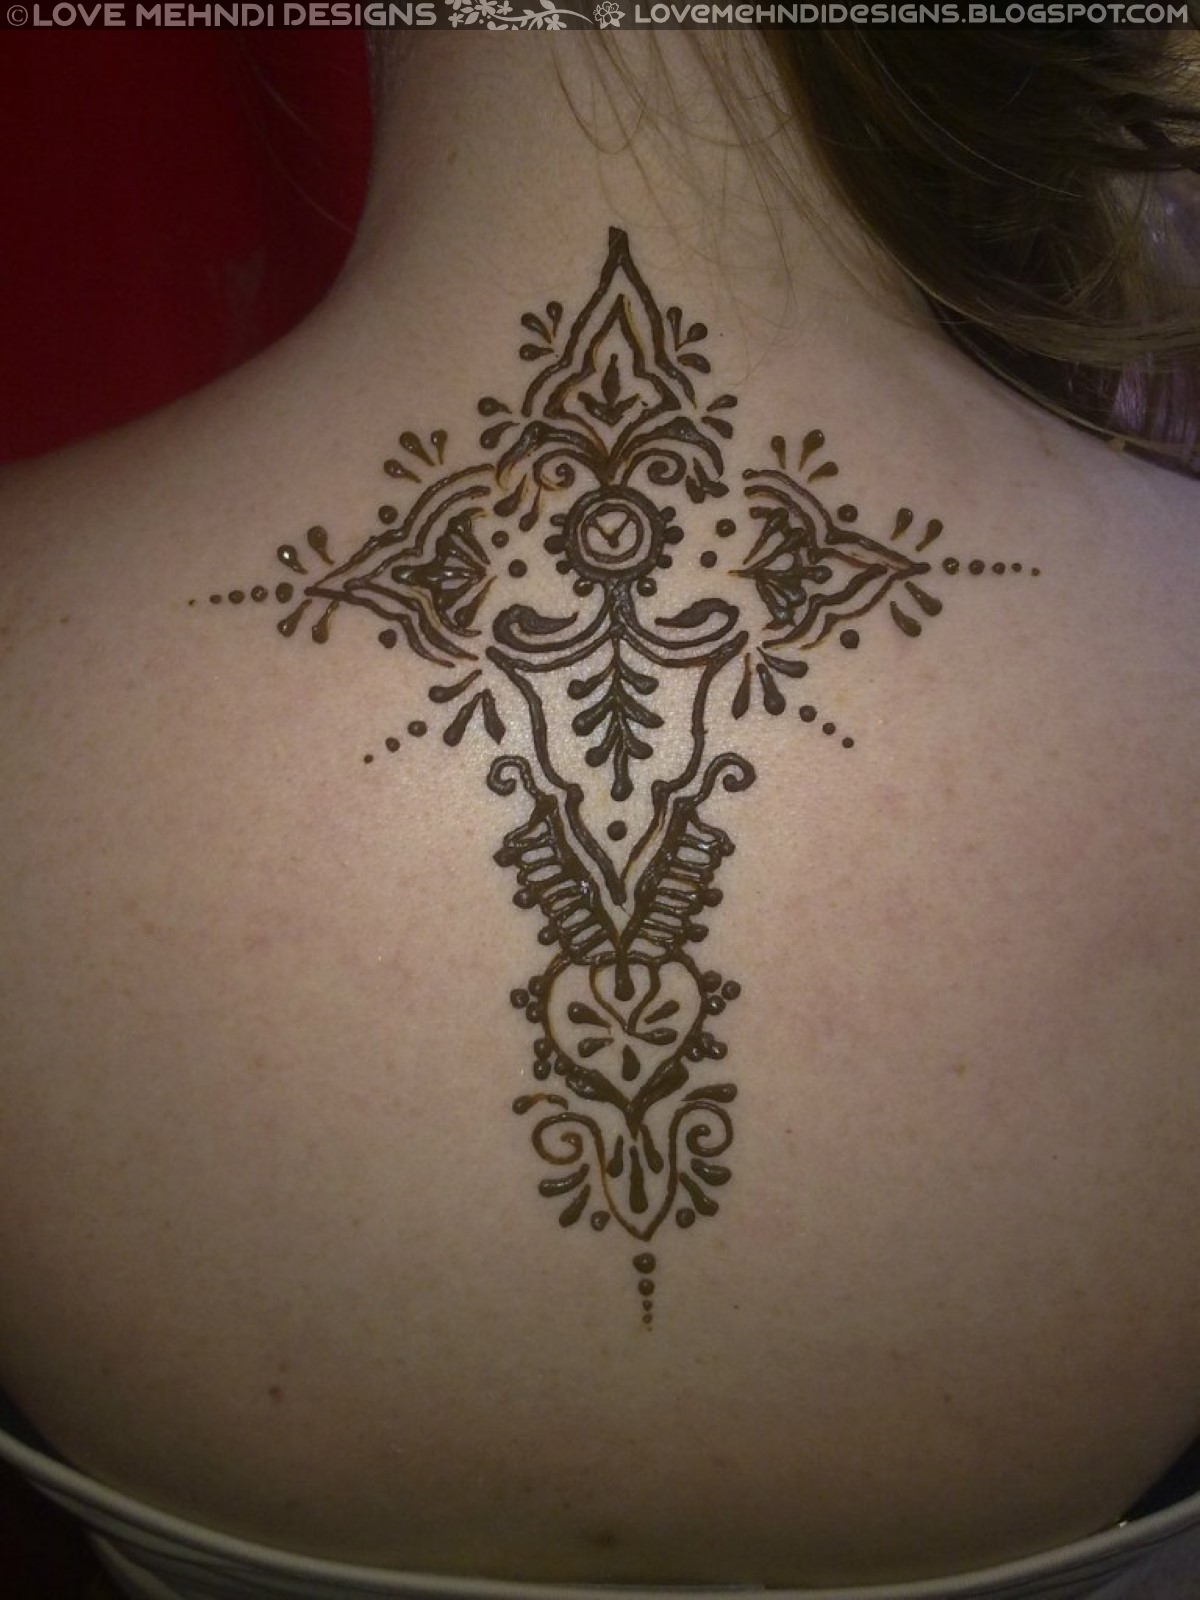 ac798554f6cc9 Henna Tattoo Designs for Back and Neck - Love Mehndi Designs